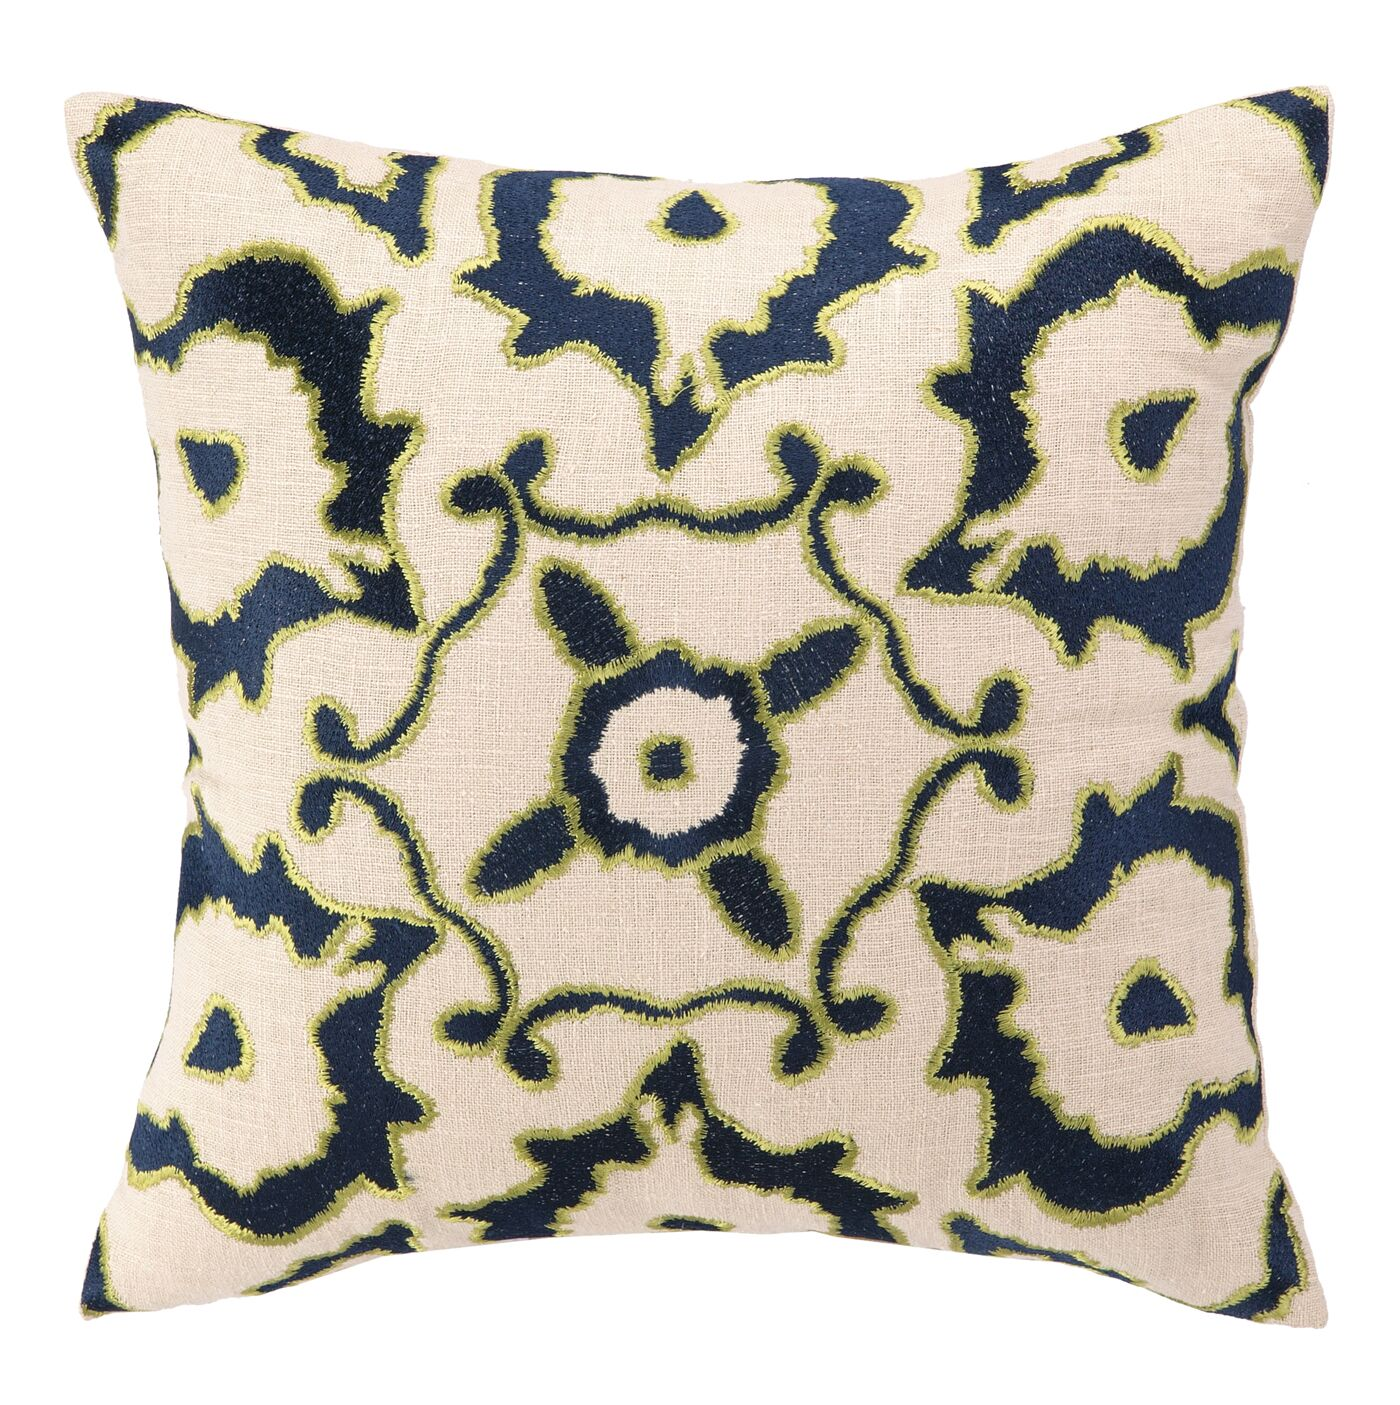 Courtney Cachet Vintage Ikat Embroidered Decorative Linen Throw Pillow Color: Navy